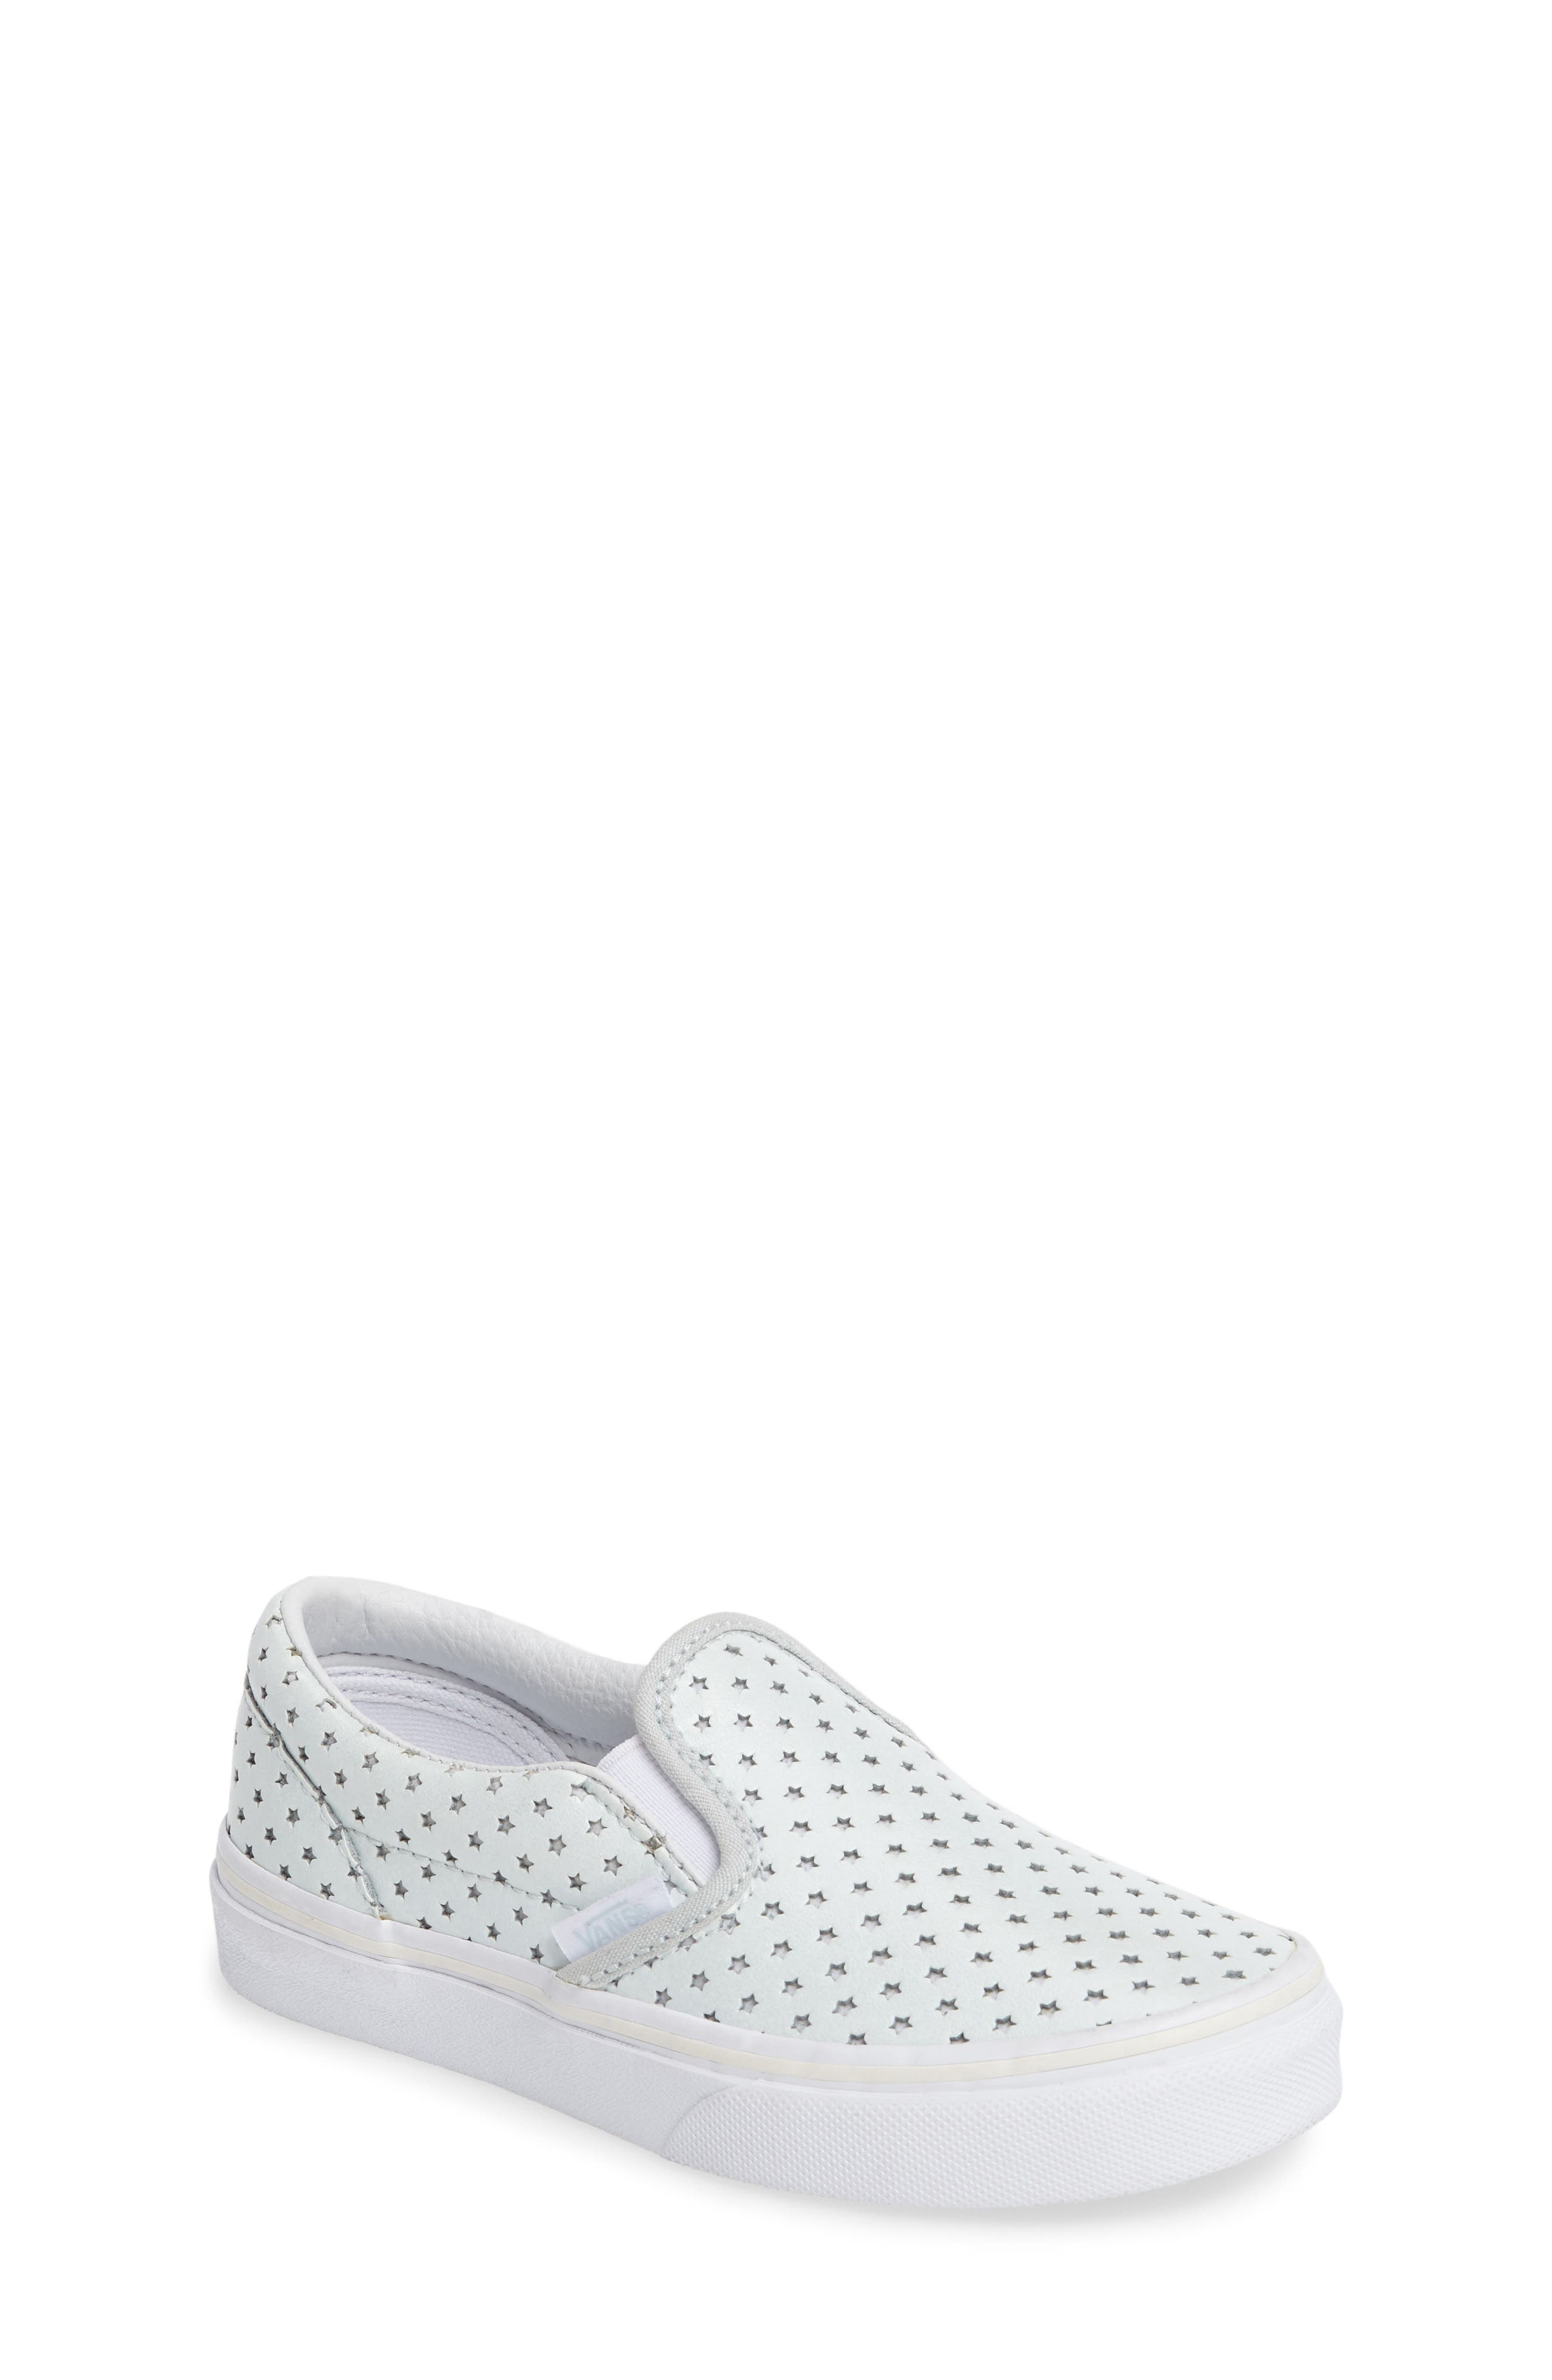 Classic Perforated Slip-On Sneaker,                             Main thumbnail 1, color,                             Stars Pearlized Leather